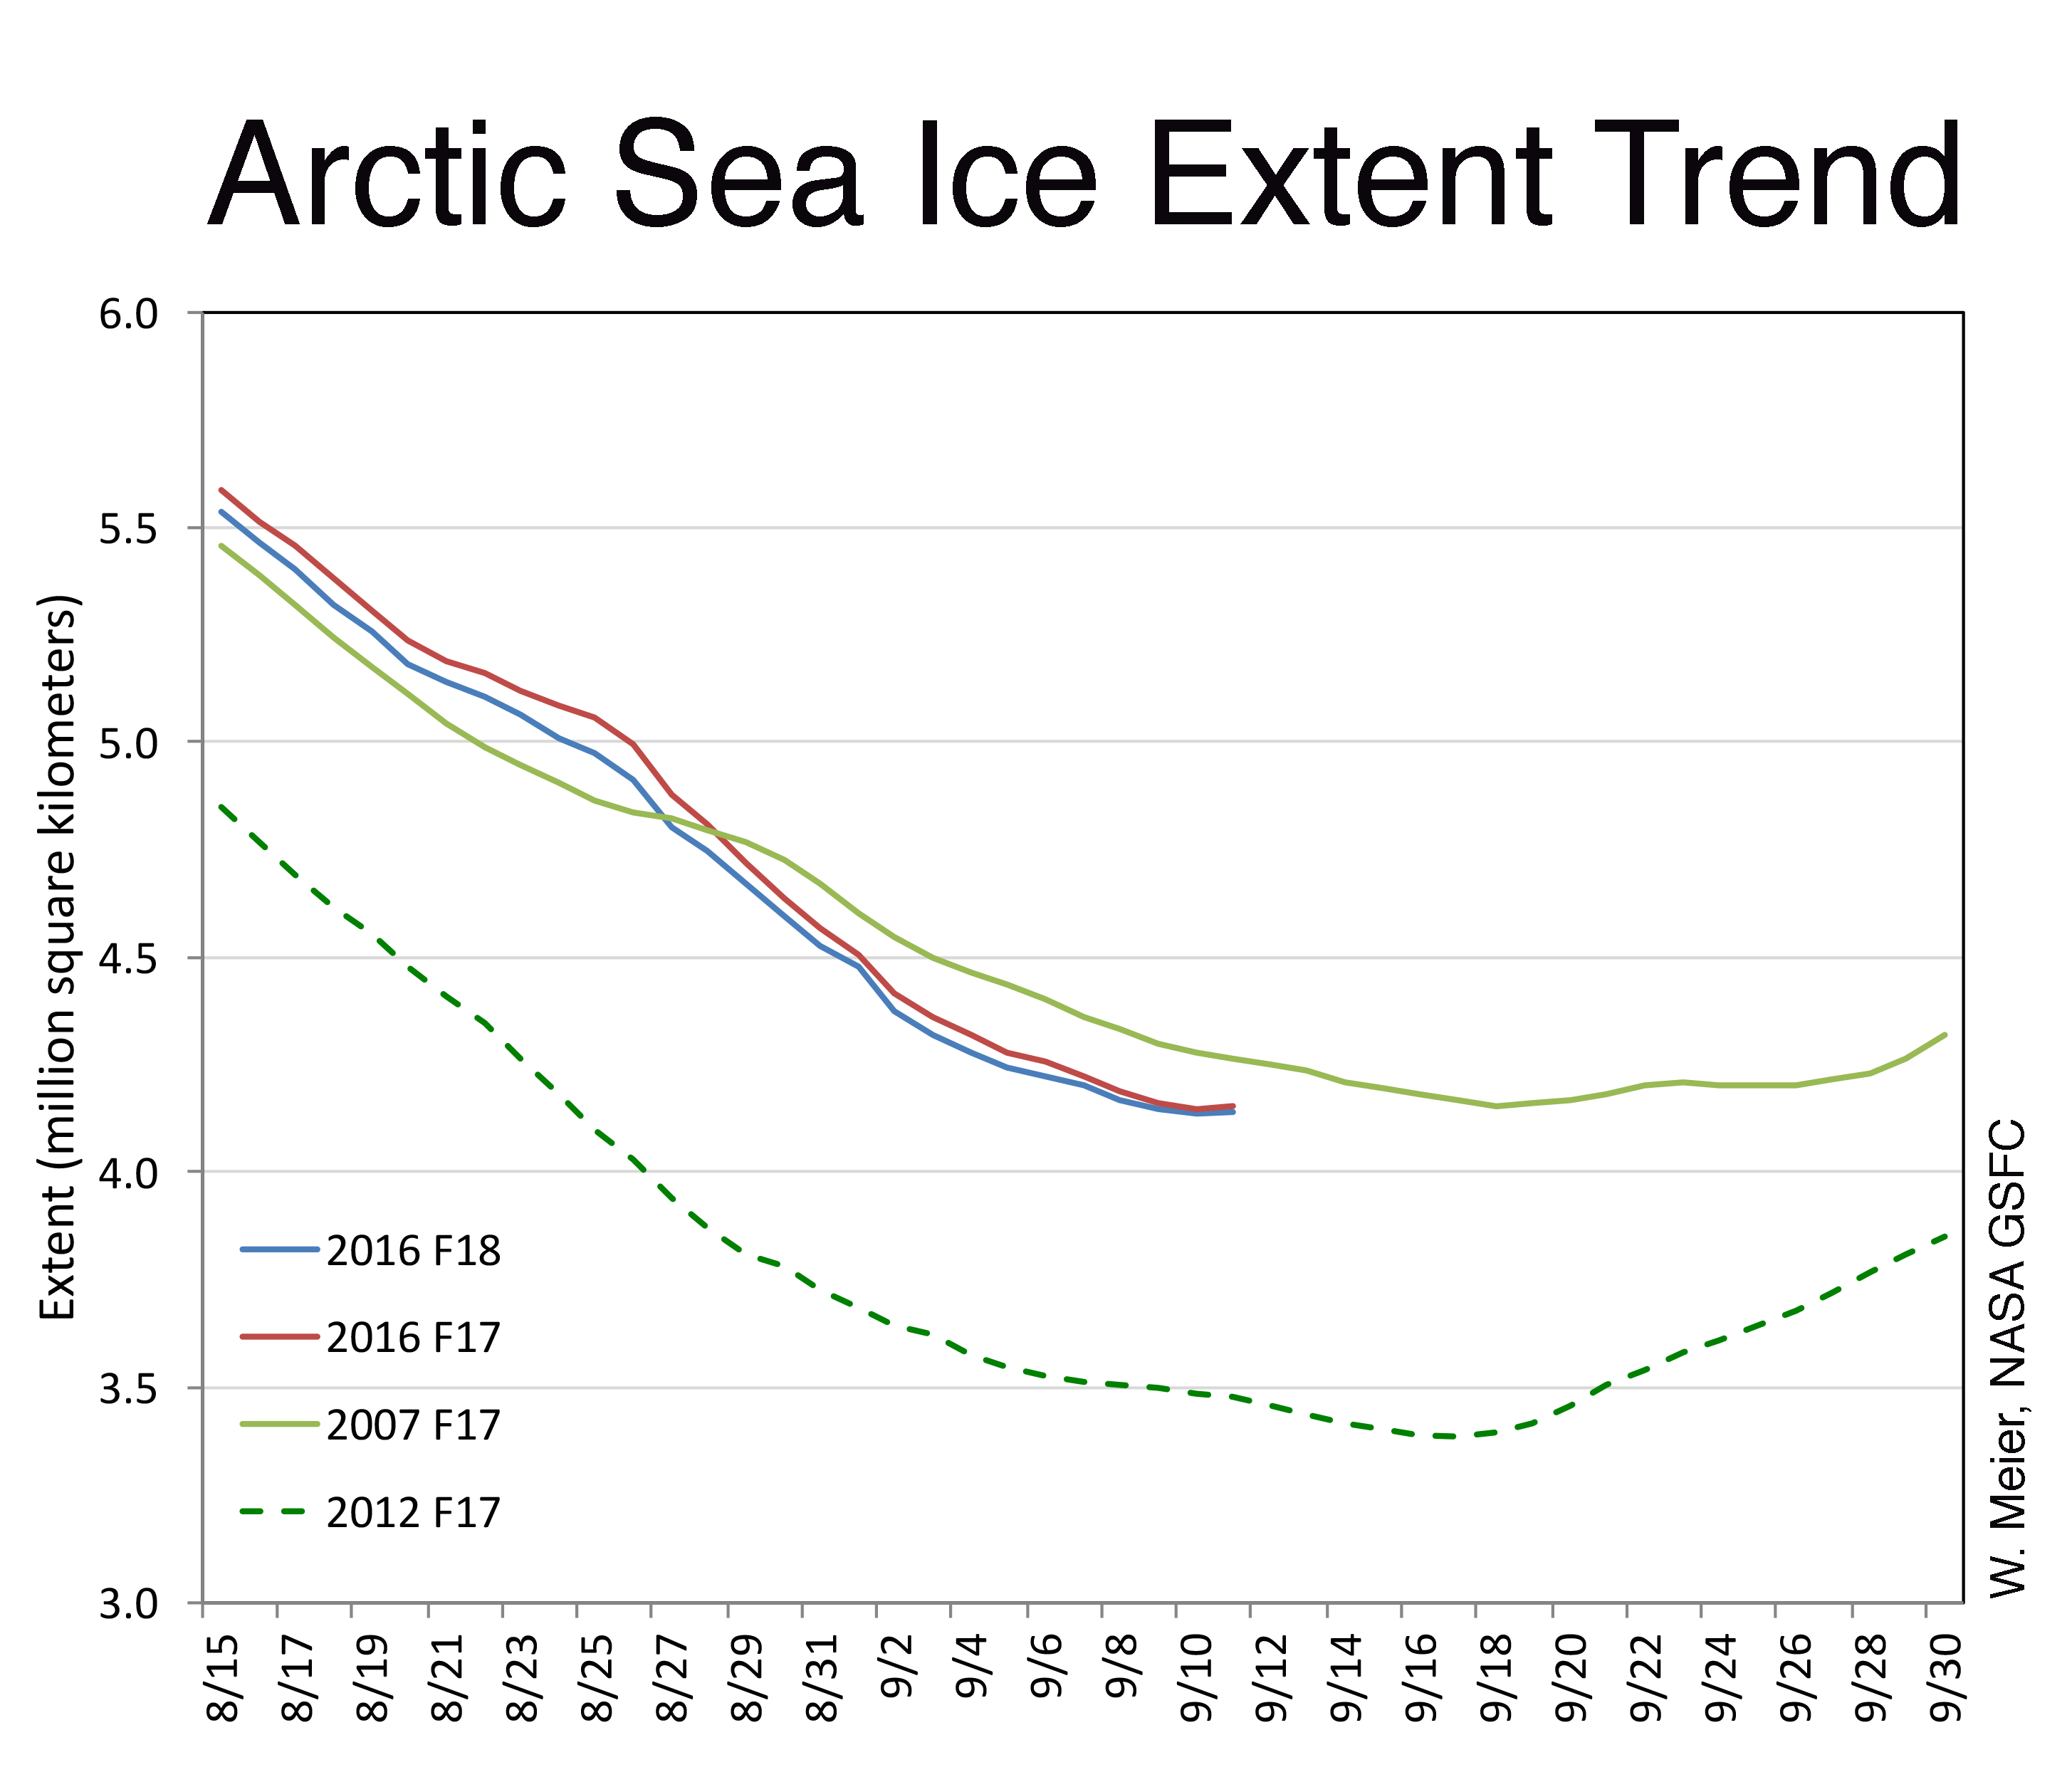 Figure 5. This graph compares Arctic sea ice extent trends from August 15  to September